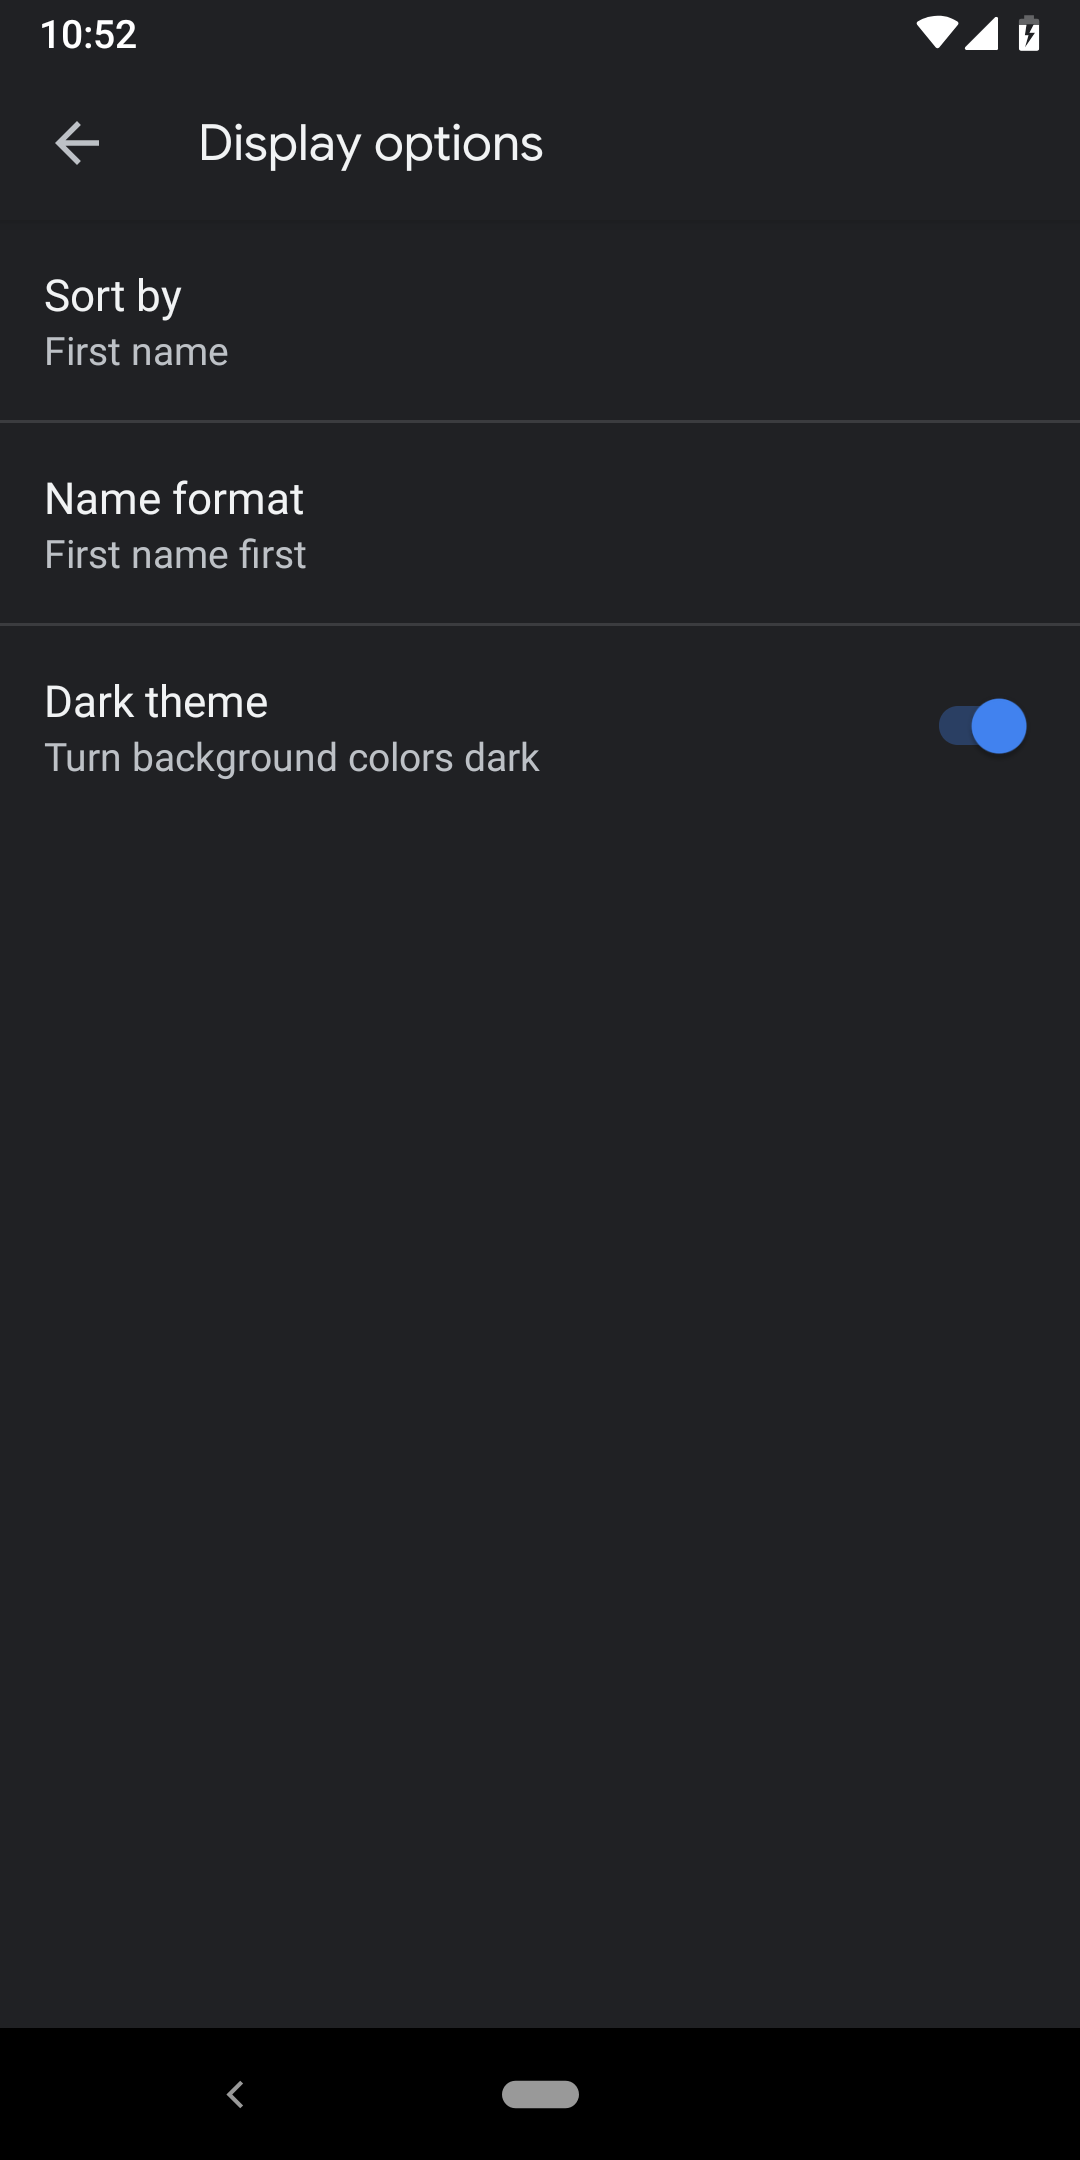 Google Phone v26 dark theme is here [APK Download]